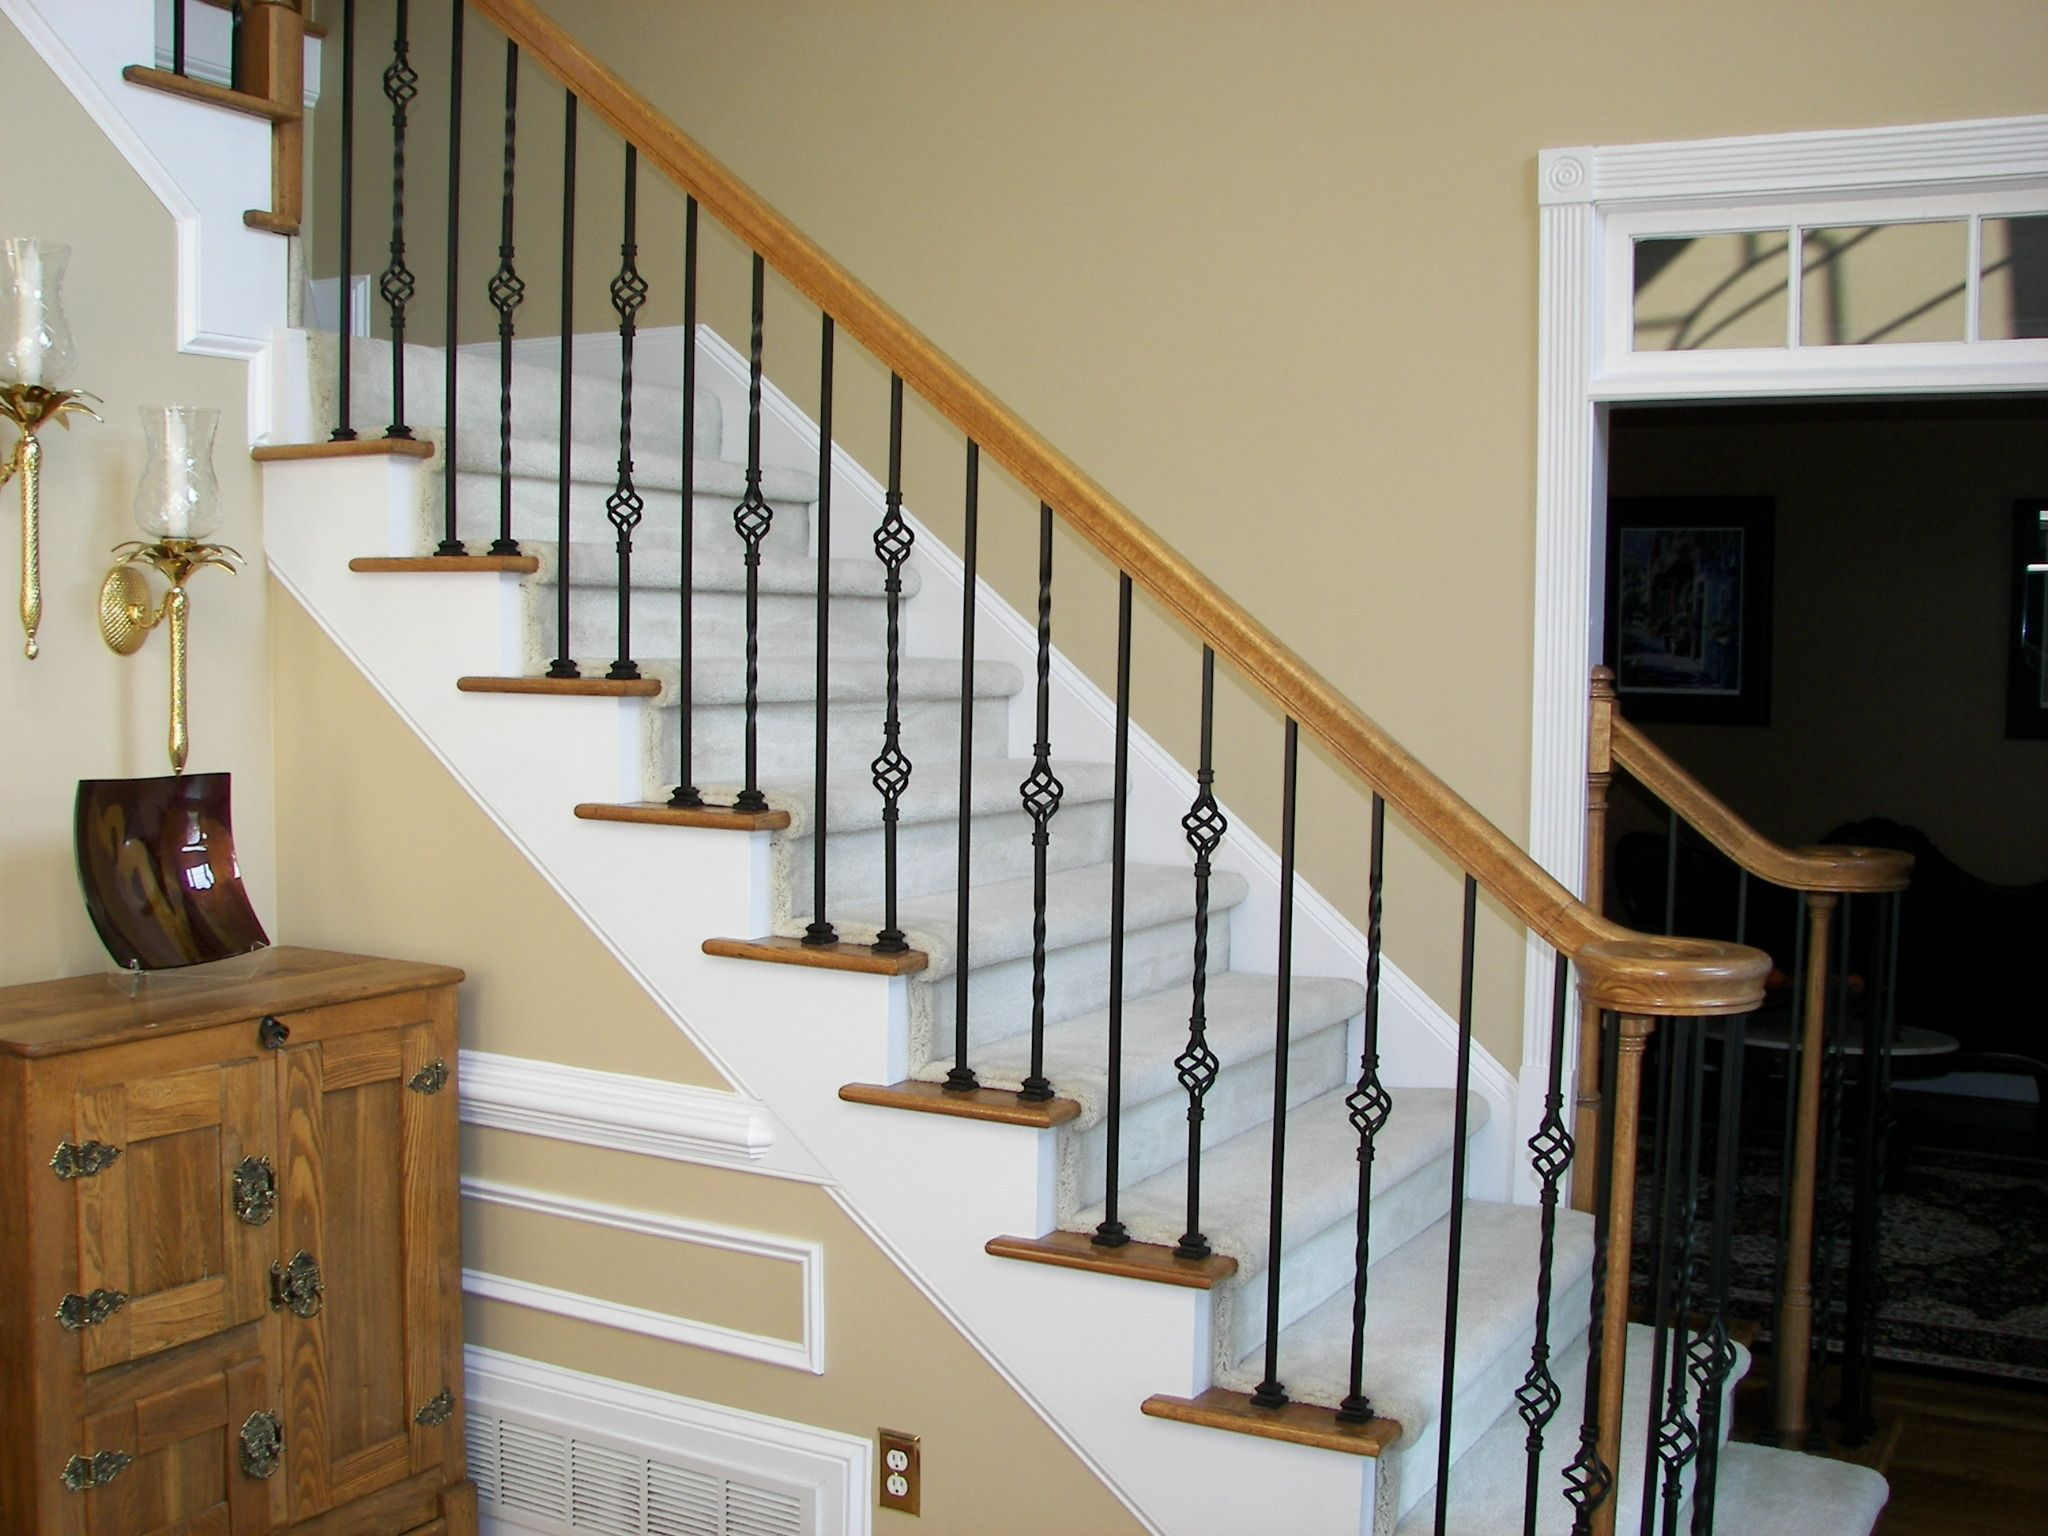 Best Double Basket Baluster Google Search Home Design 400 x 300